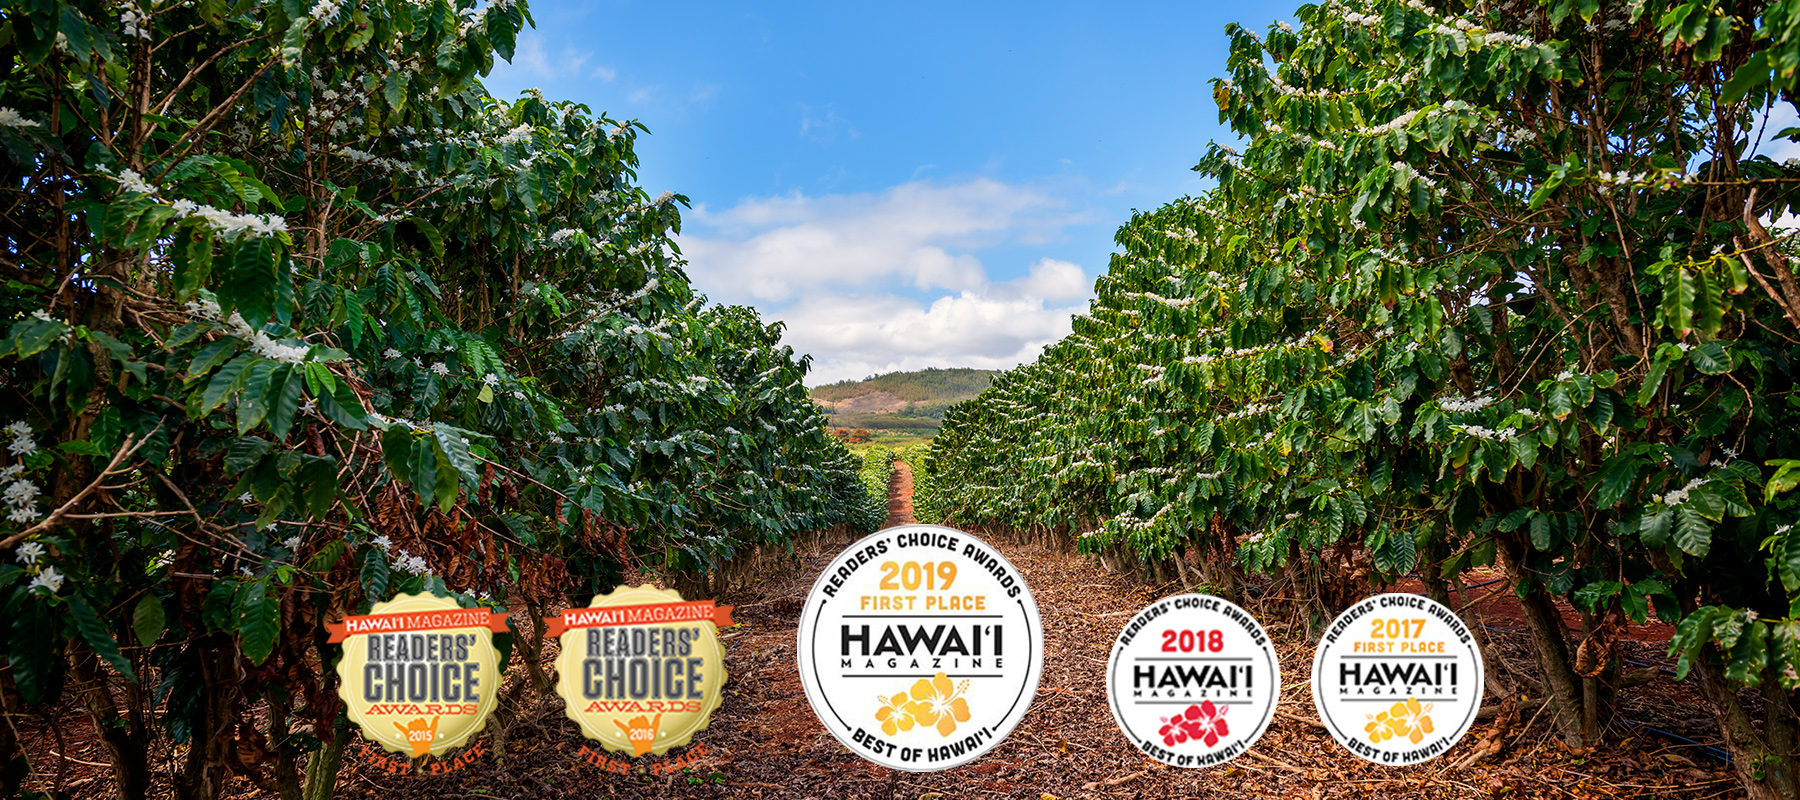 Kauai Coffee wins best Best Coffee in Hawaii Magazine Reader's Choice Awards